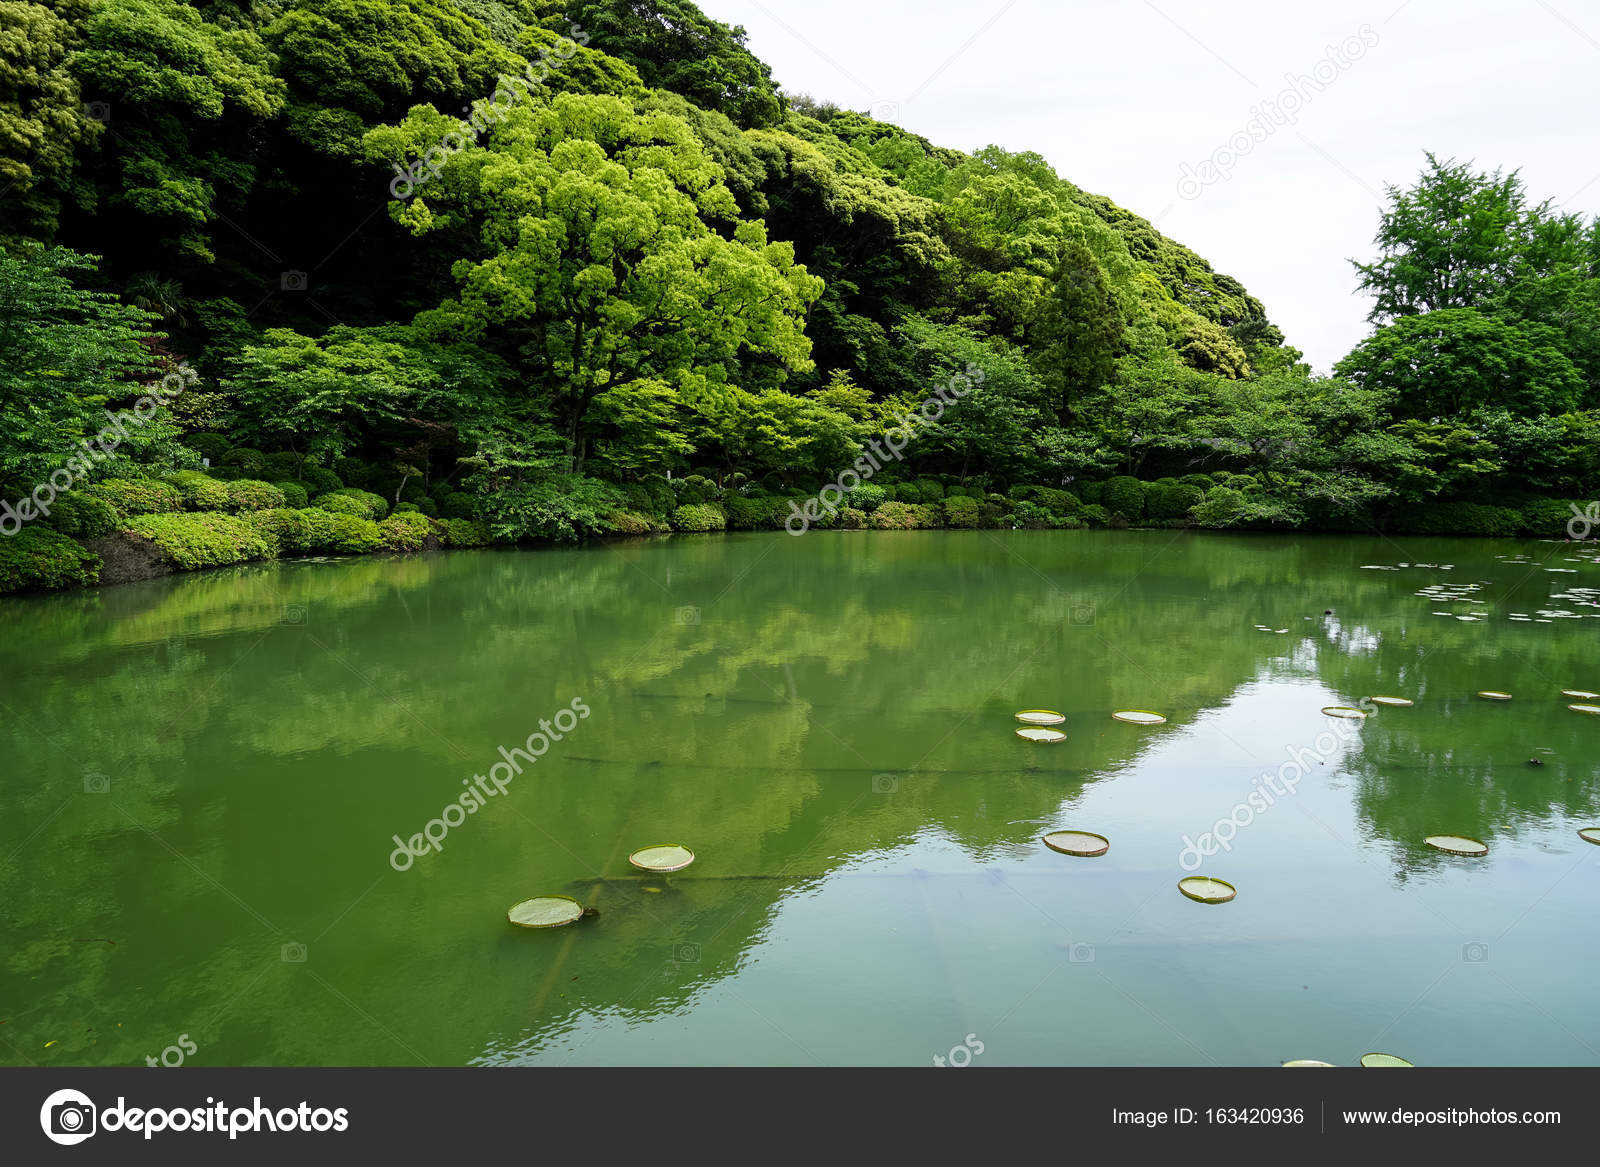 Beautiful Scene Of Lush Green Japanese Garden Landscape With